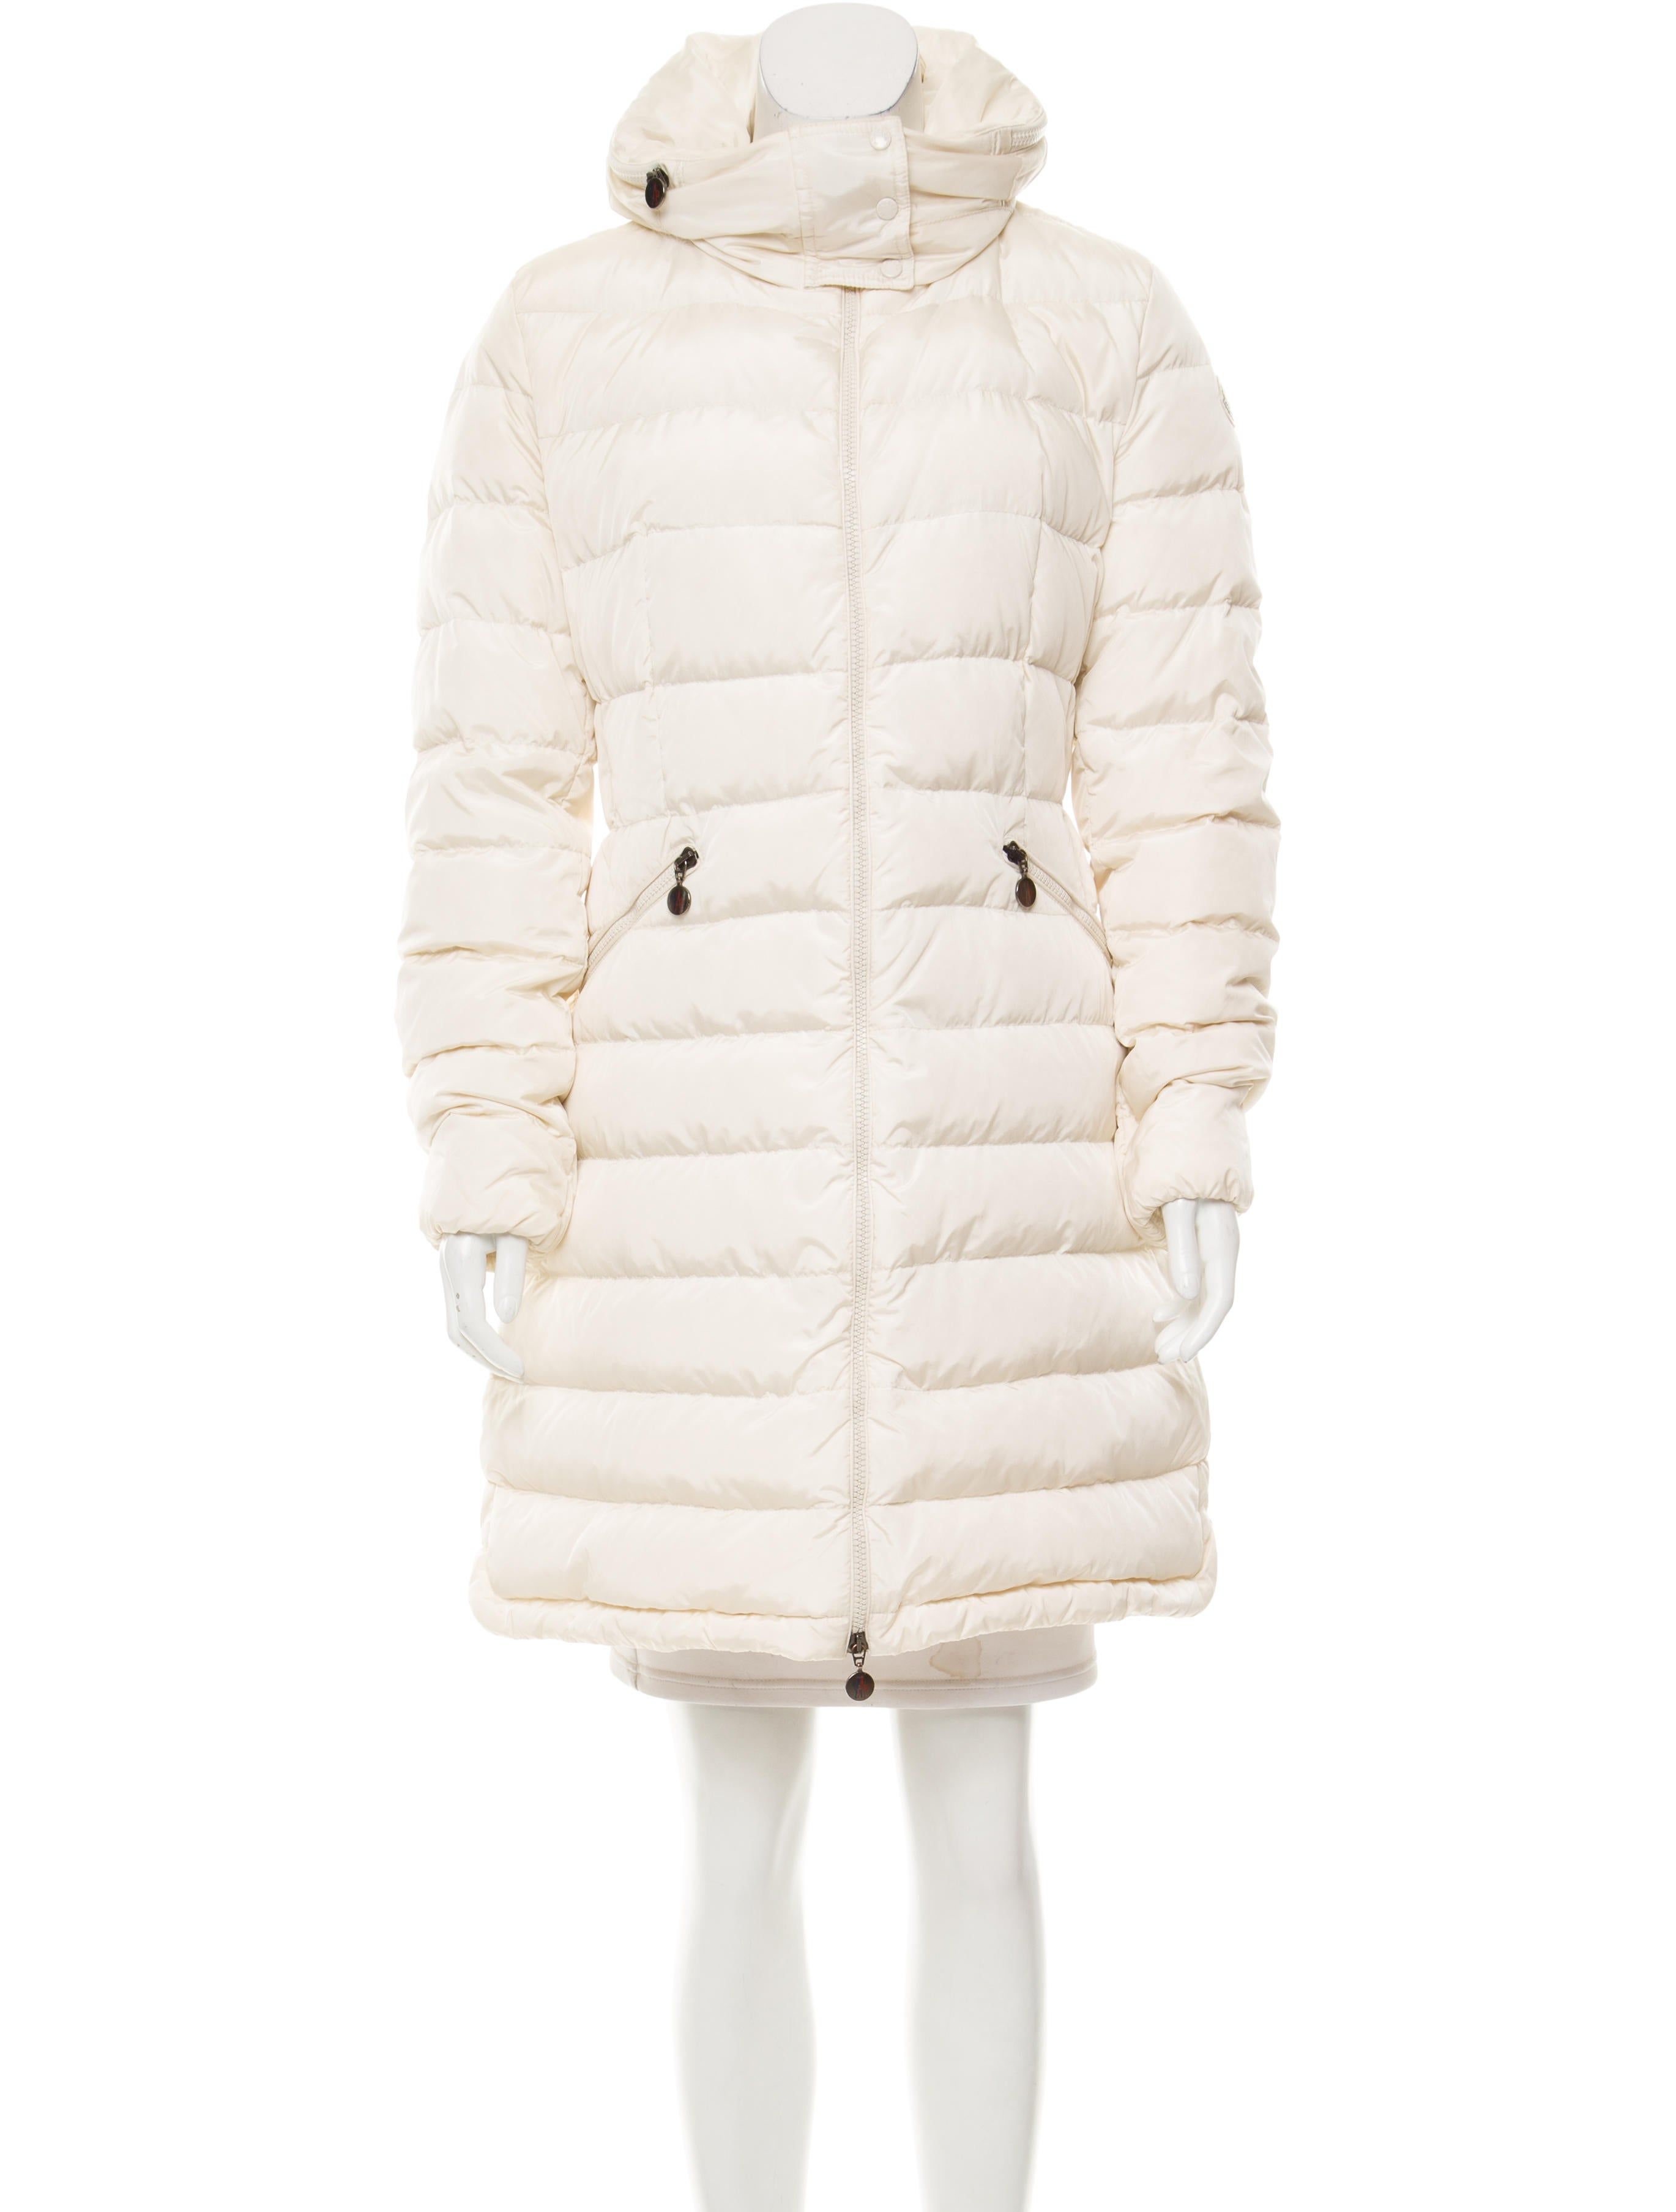 e56e7db4aef3 Clothing Flamme Moc25430 Down The Realreal Coat Moncler qgvxCwg